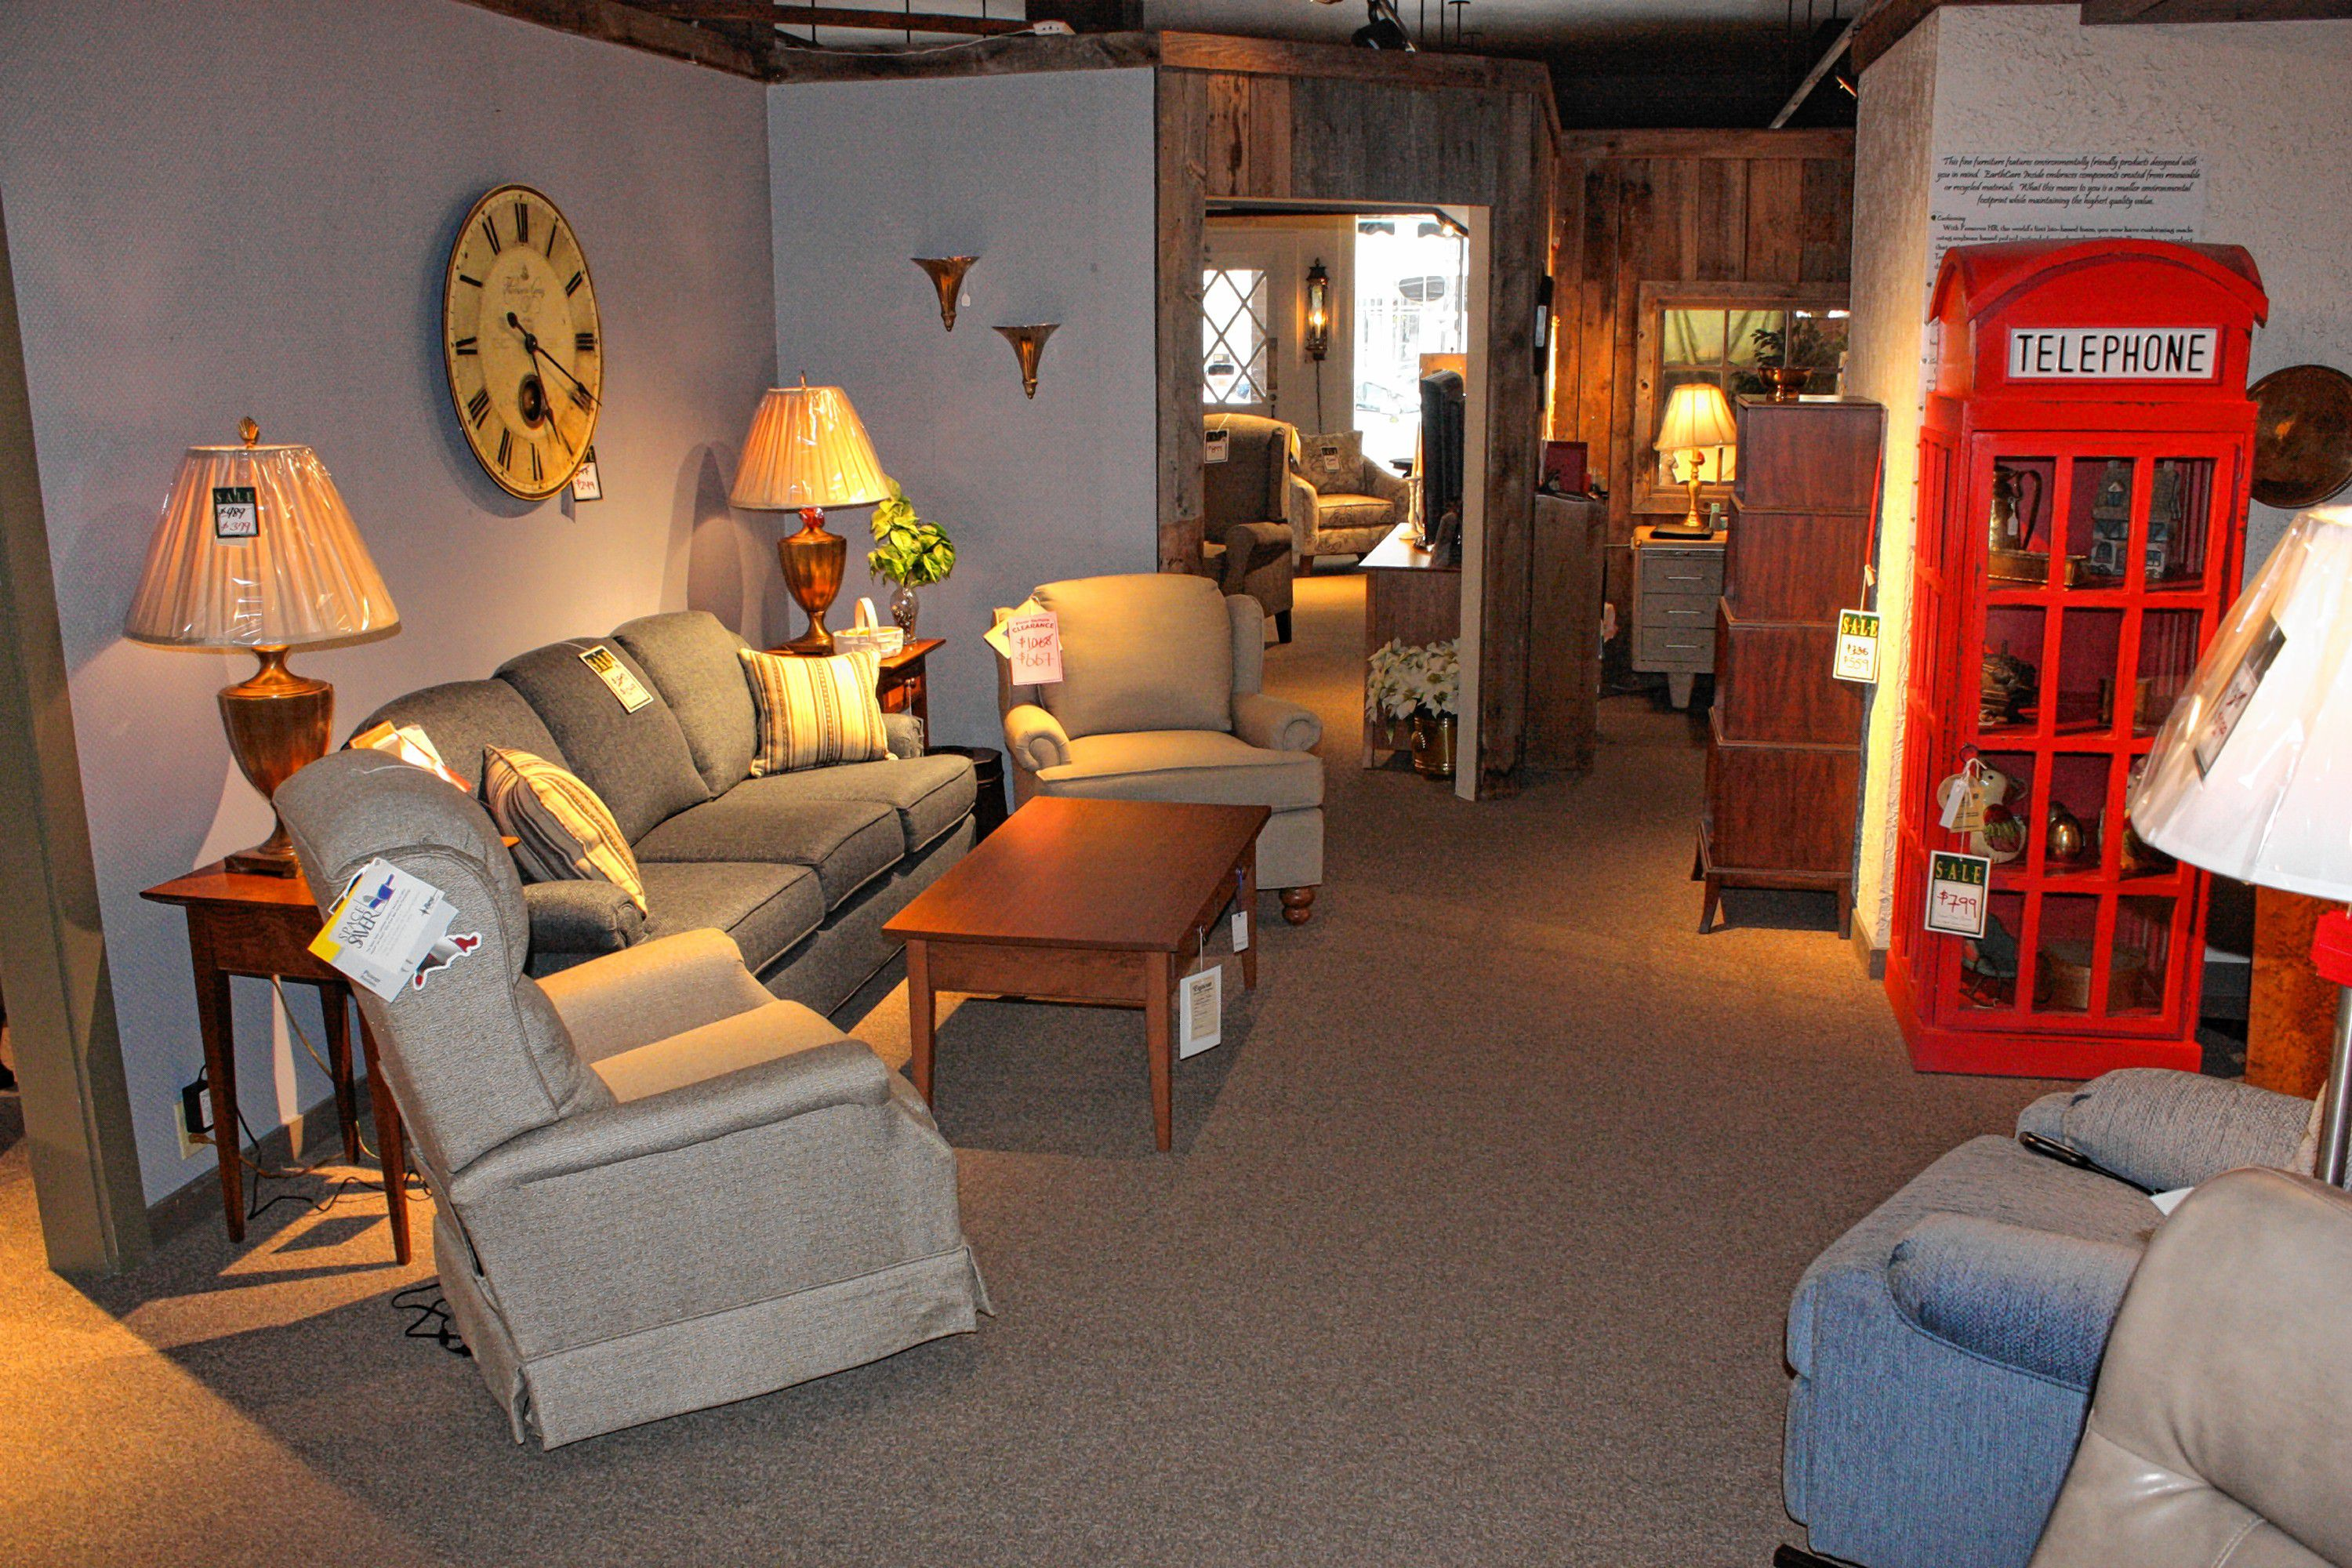 Awesome Thereu0027s A Shocking Amount Of Inventory At Endicott Furniture, The Repeat  Winner Of The Best